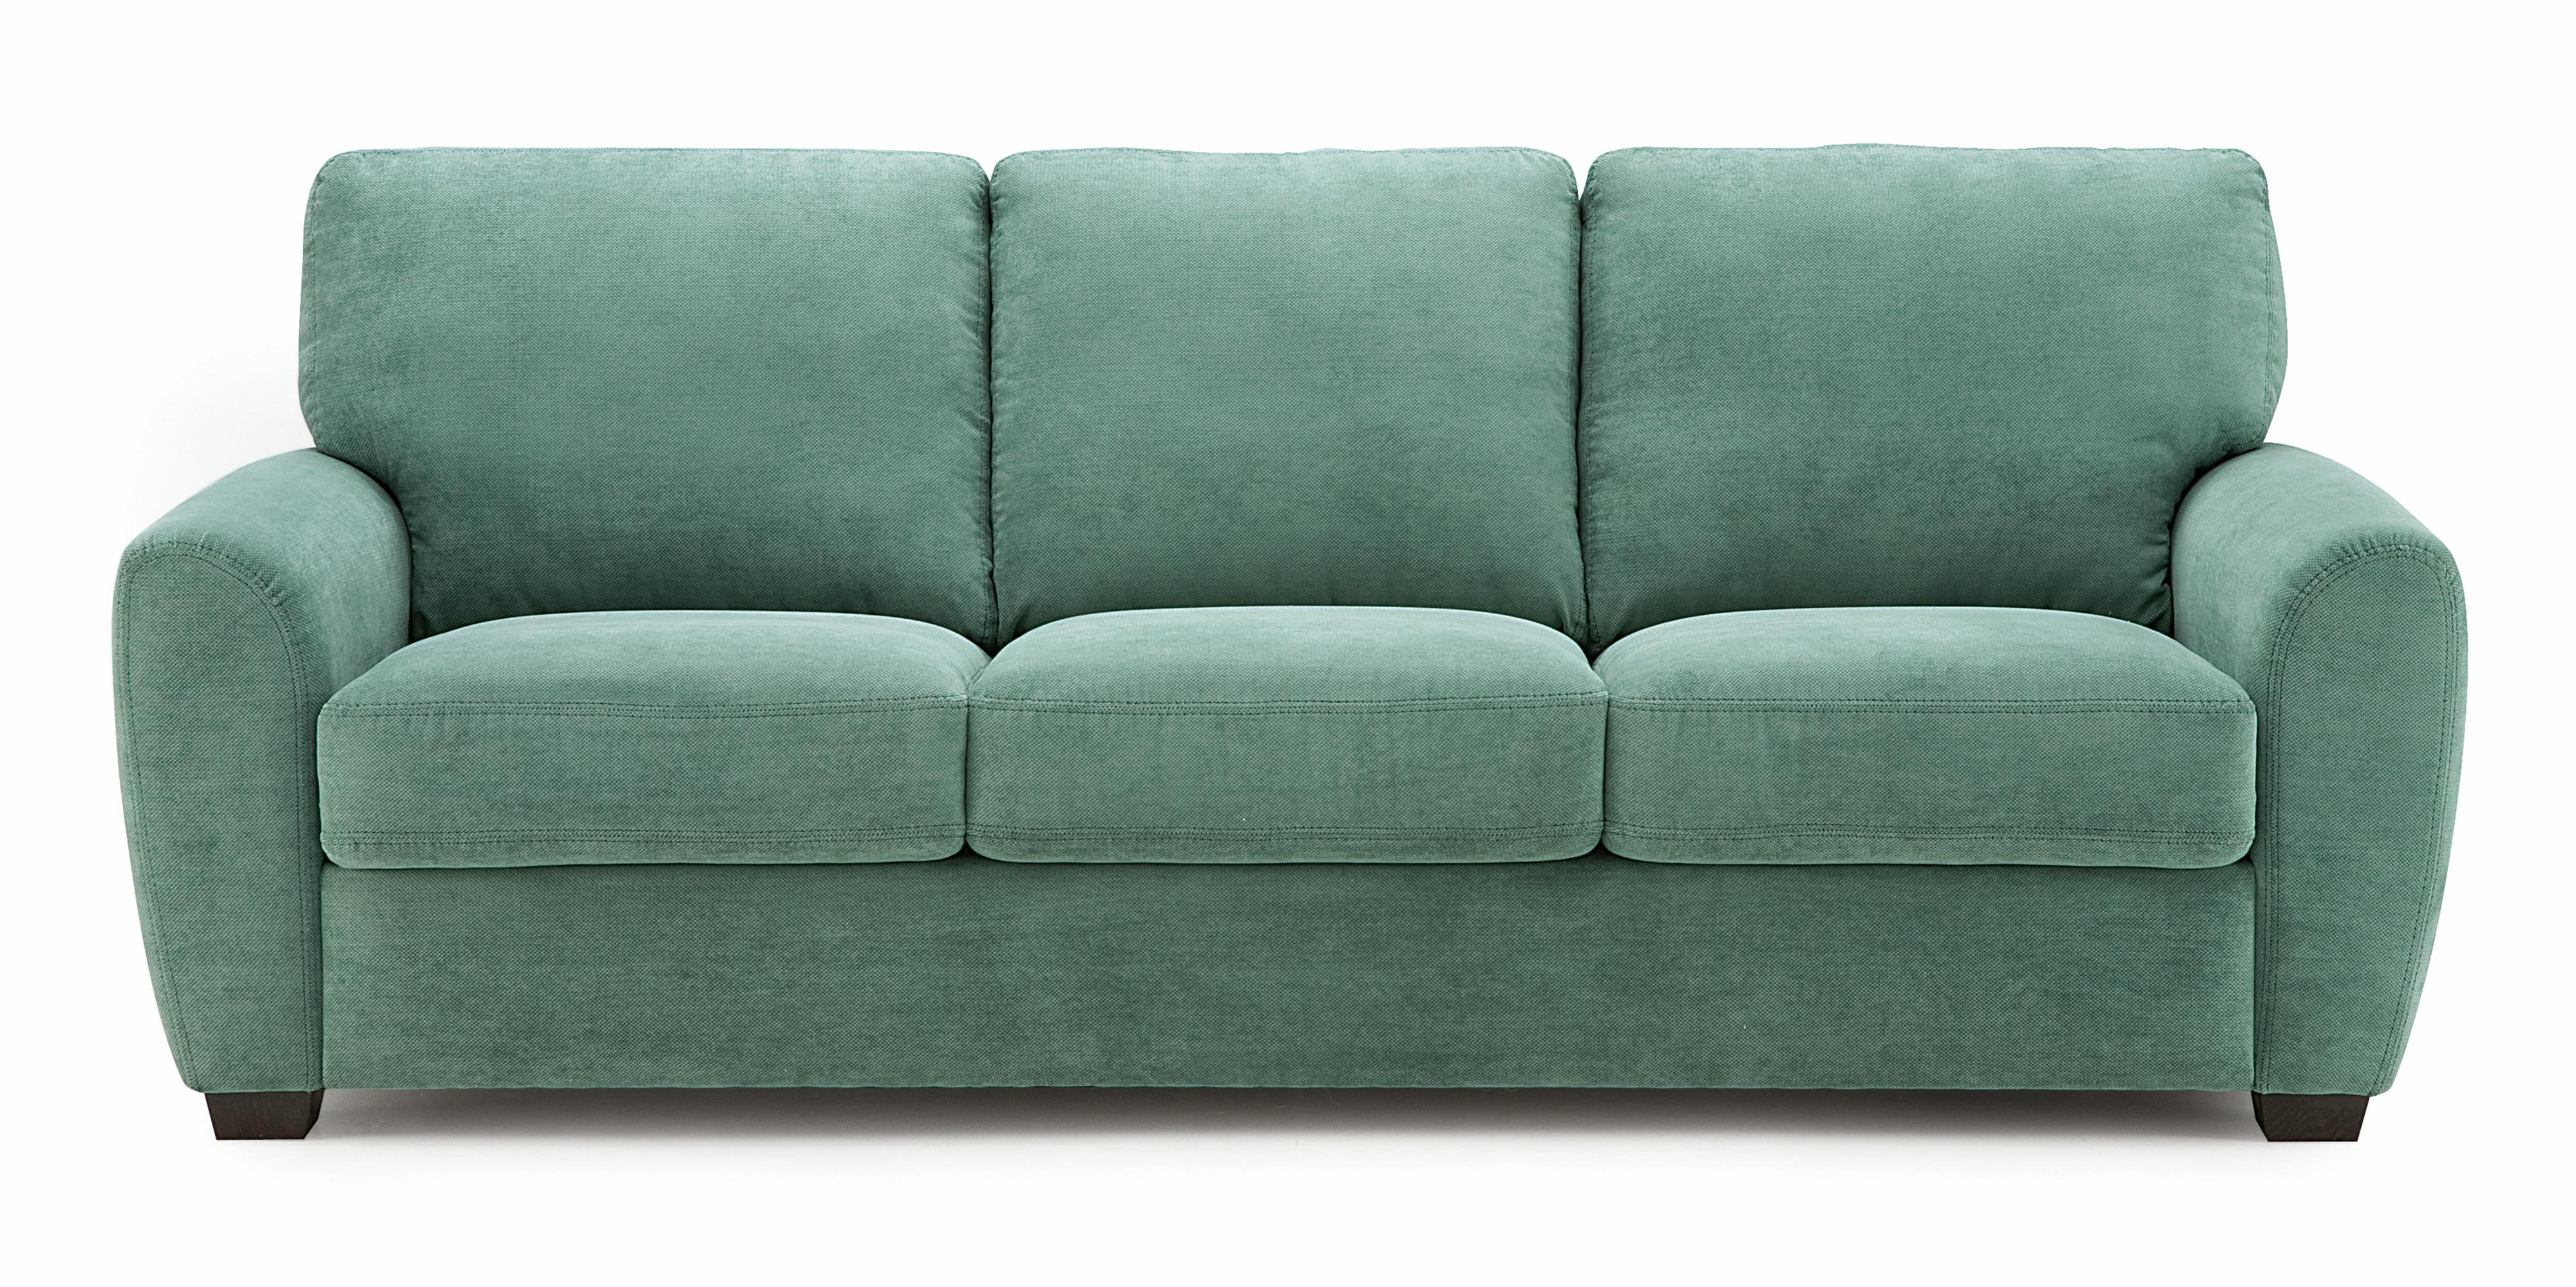 Palliser Connecticut Contemporary Sofa With Rounded Track